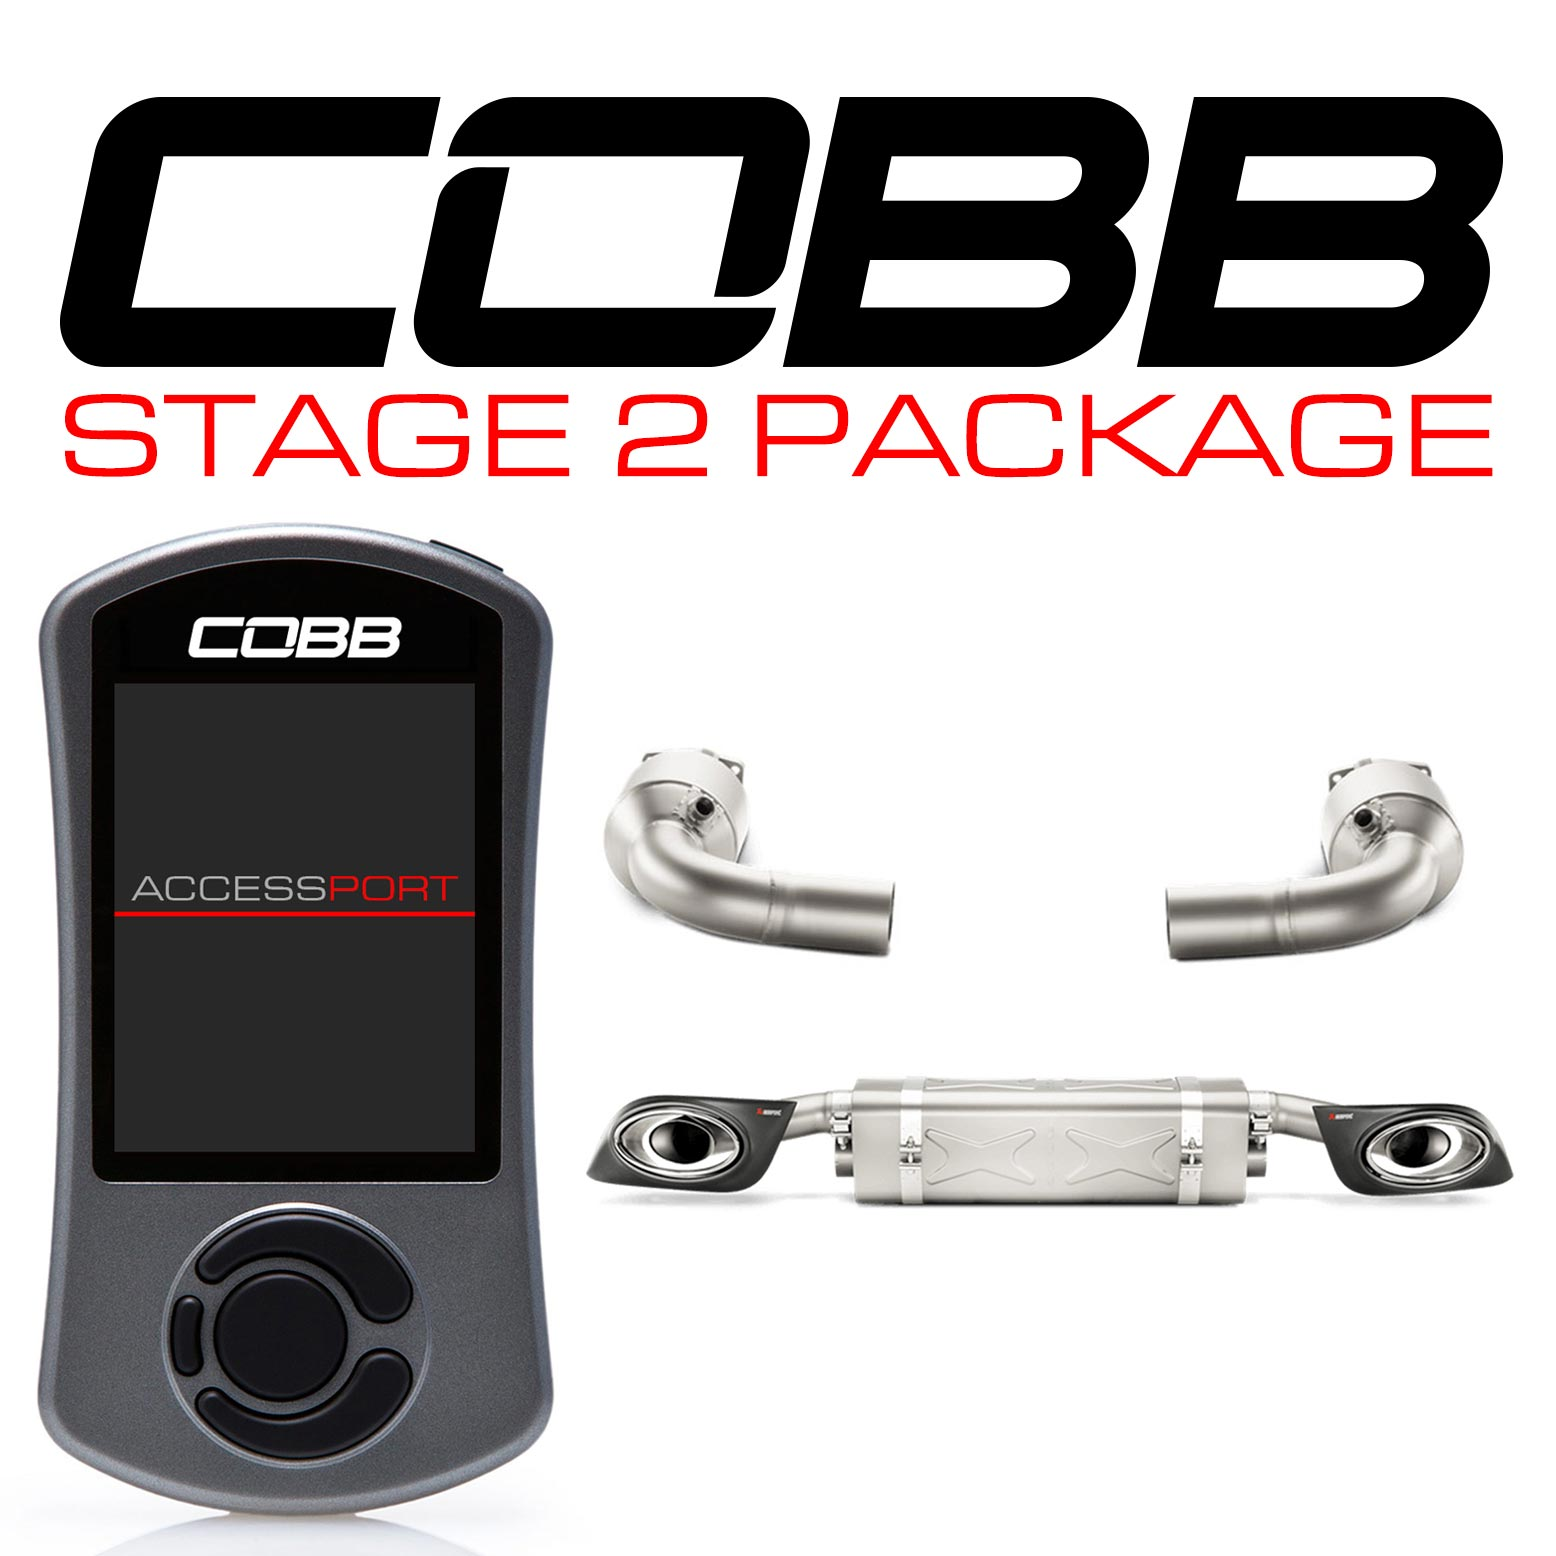 Porsche Stage 2 Power Package 991.1 Turbo / Turbo S 2014-2016